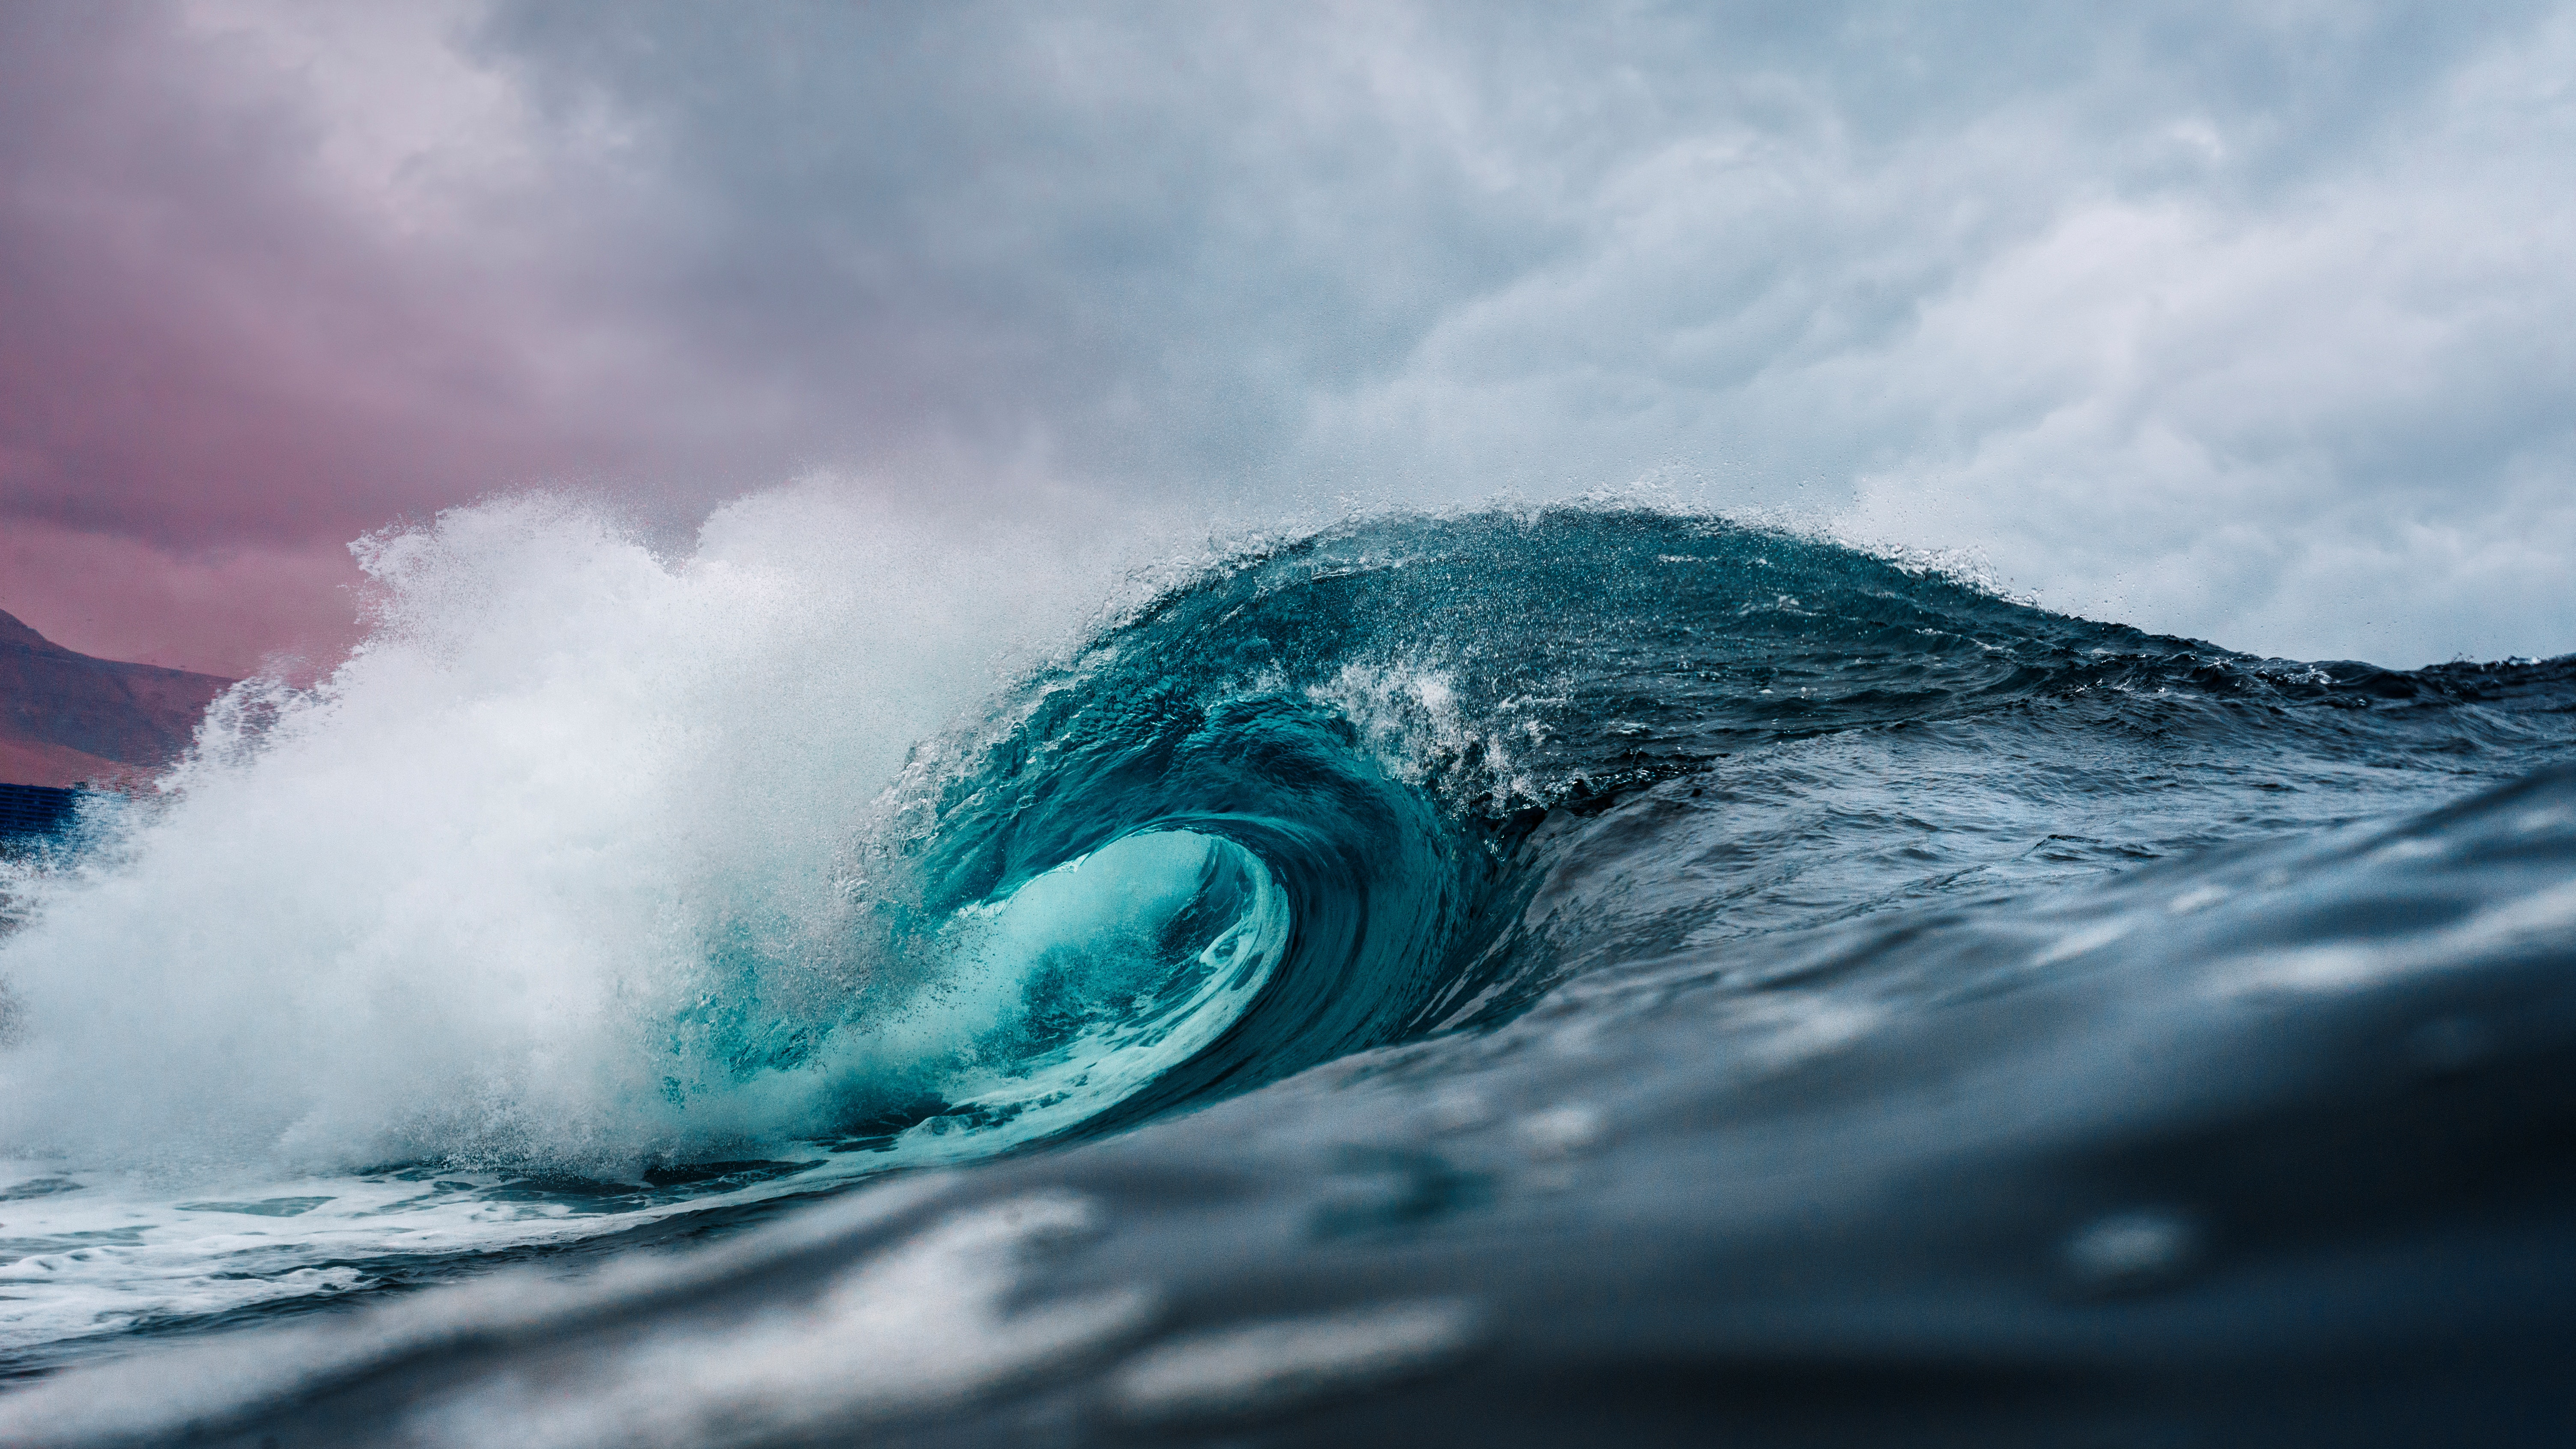 ocean wave 5k  hd nature  4k wallpapers  images  backgrounds  photos and pictures